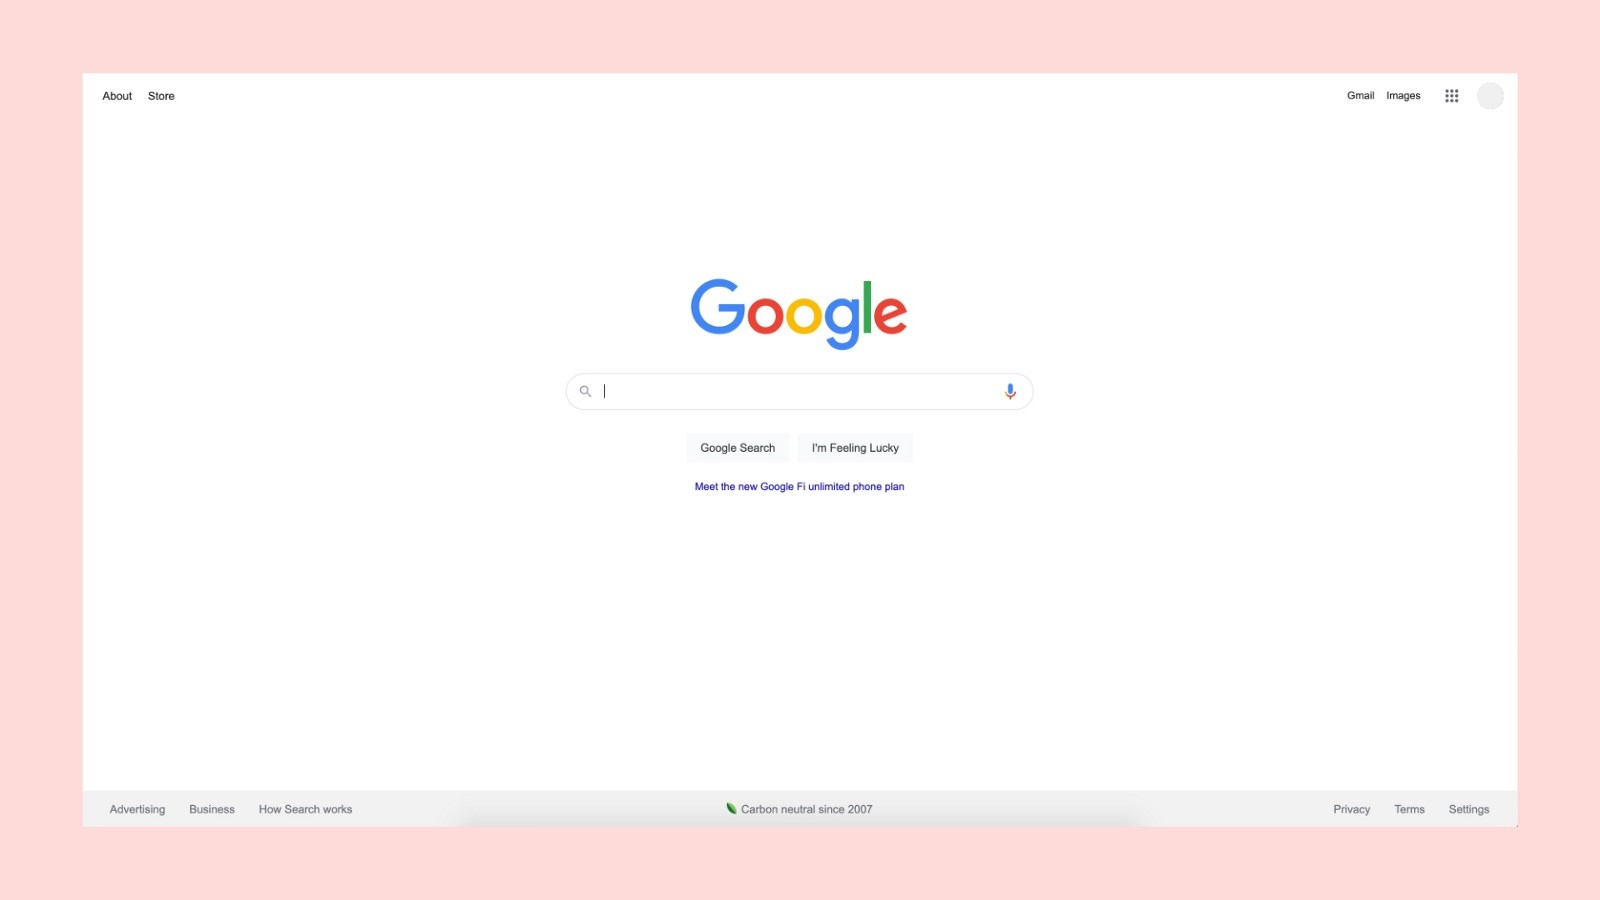 Super simple UX and UI design for the Google homepage